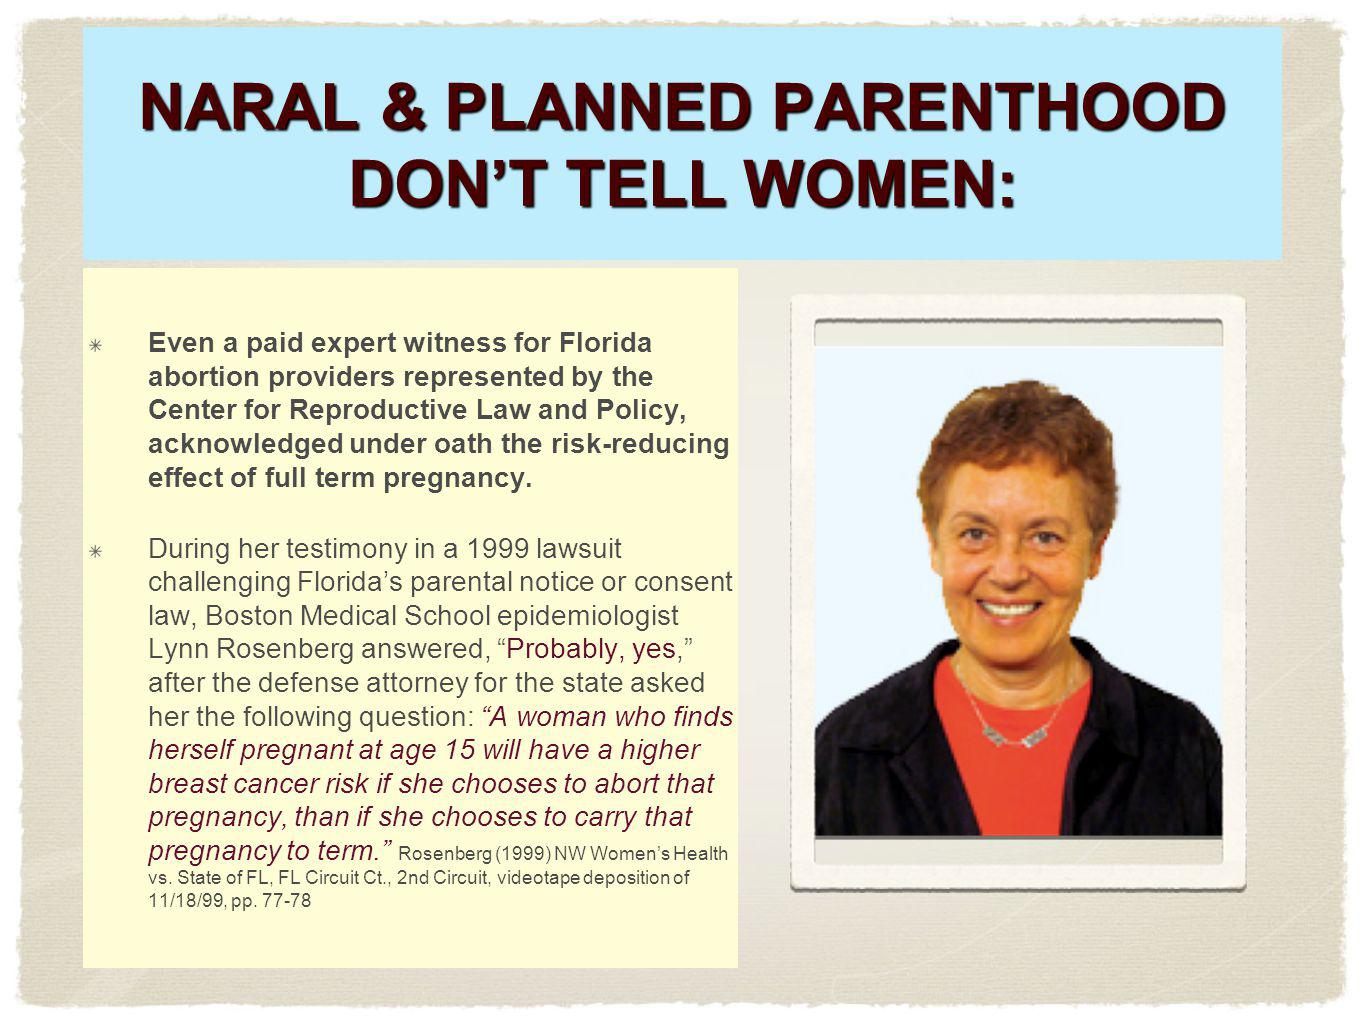 NARAL & PLANNED PARENTHOOD DON'T TELL WOMEN: